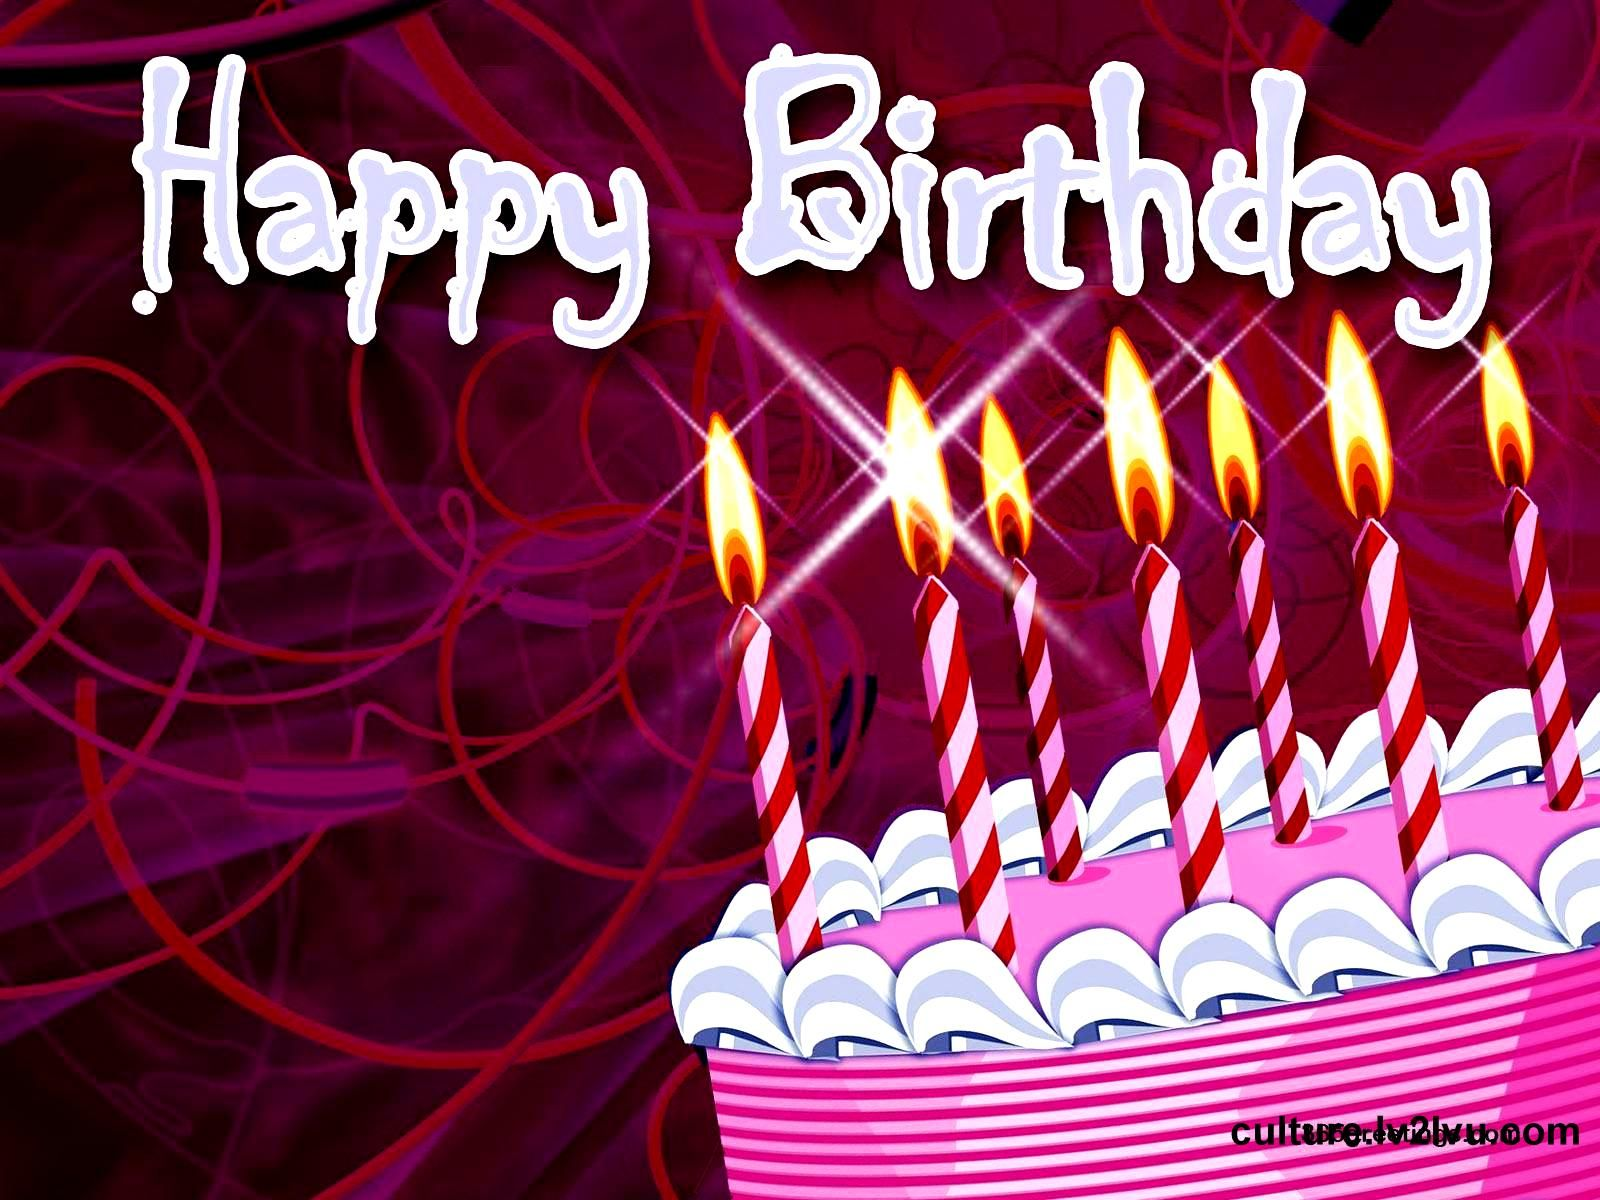 happy birthday wishes for a friend Google Search